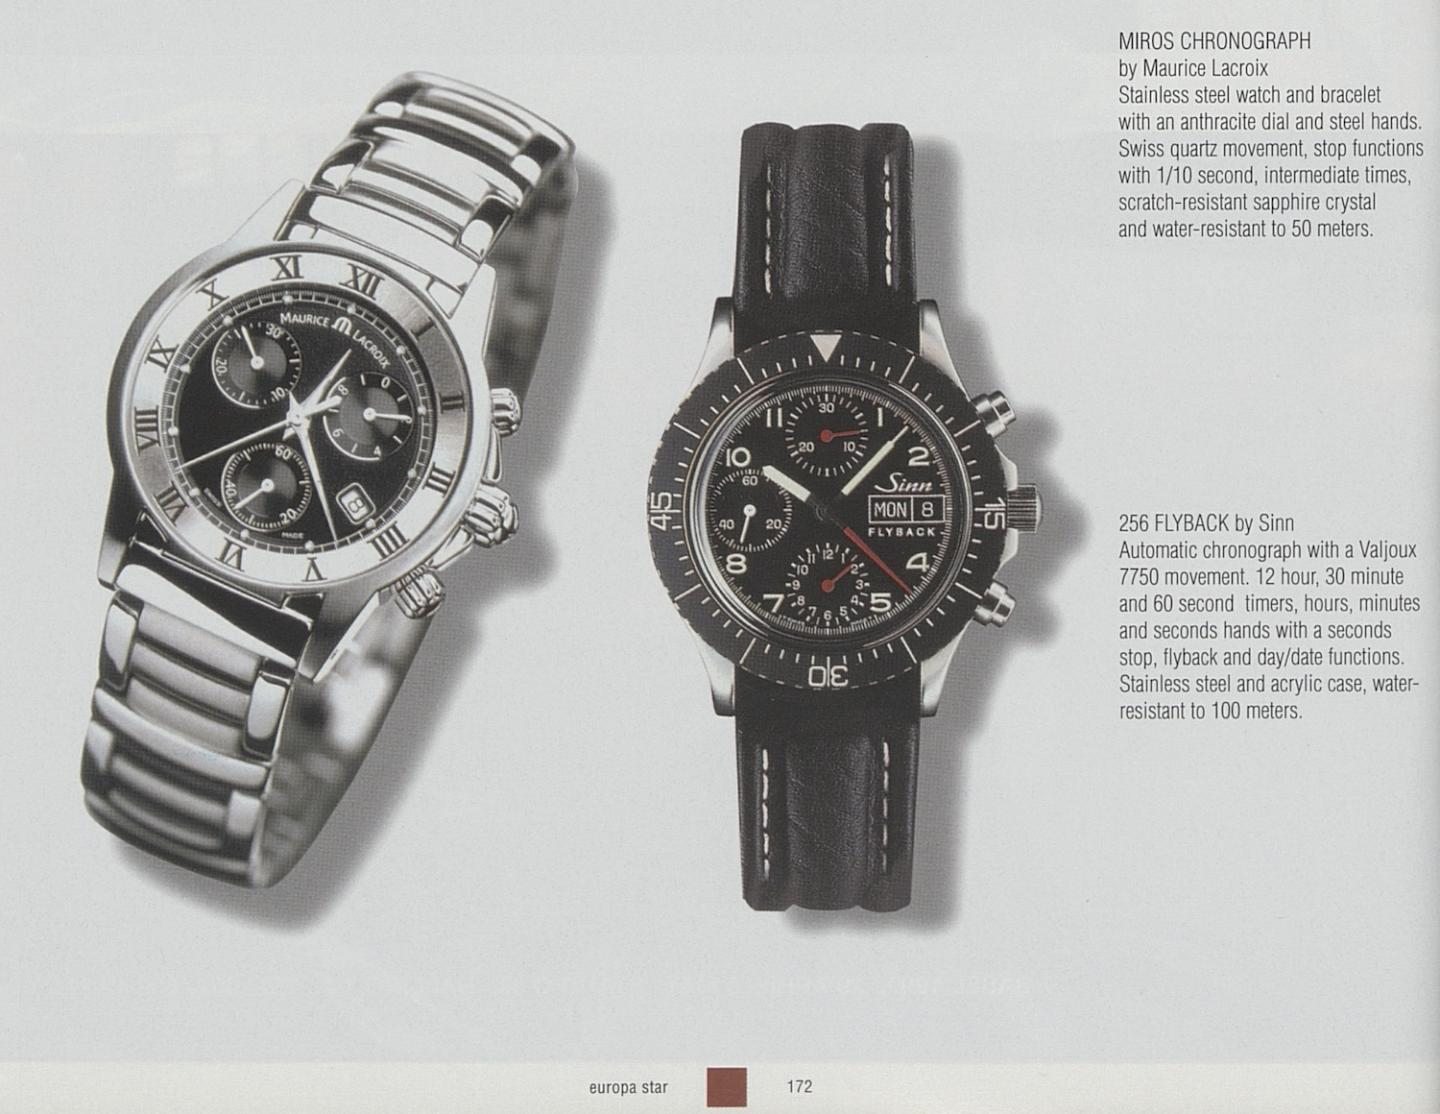 The 256 Flyback chronograph, a quintessential Sinn timepiece (picture from a 1999 Europa Star edition).